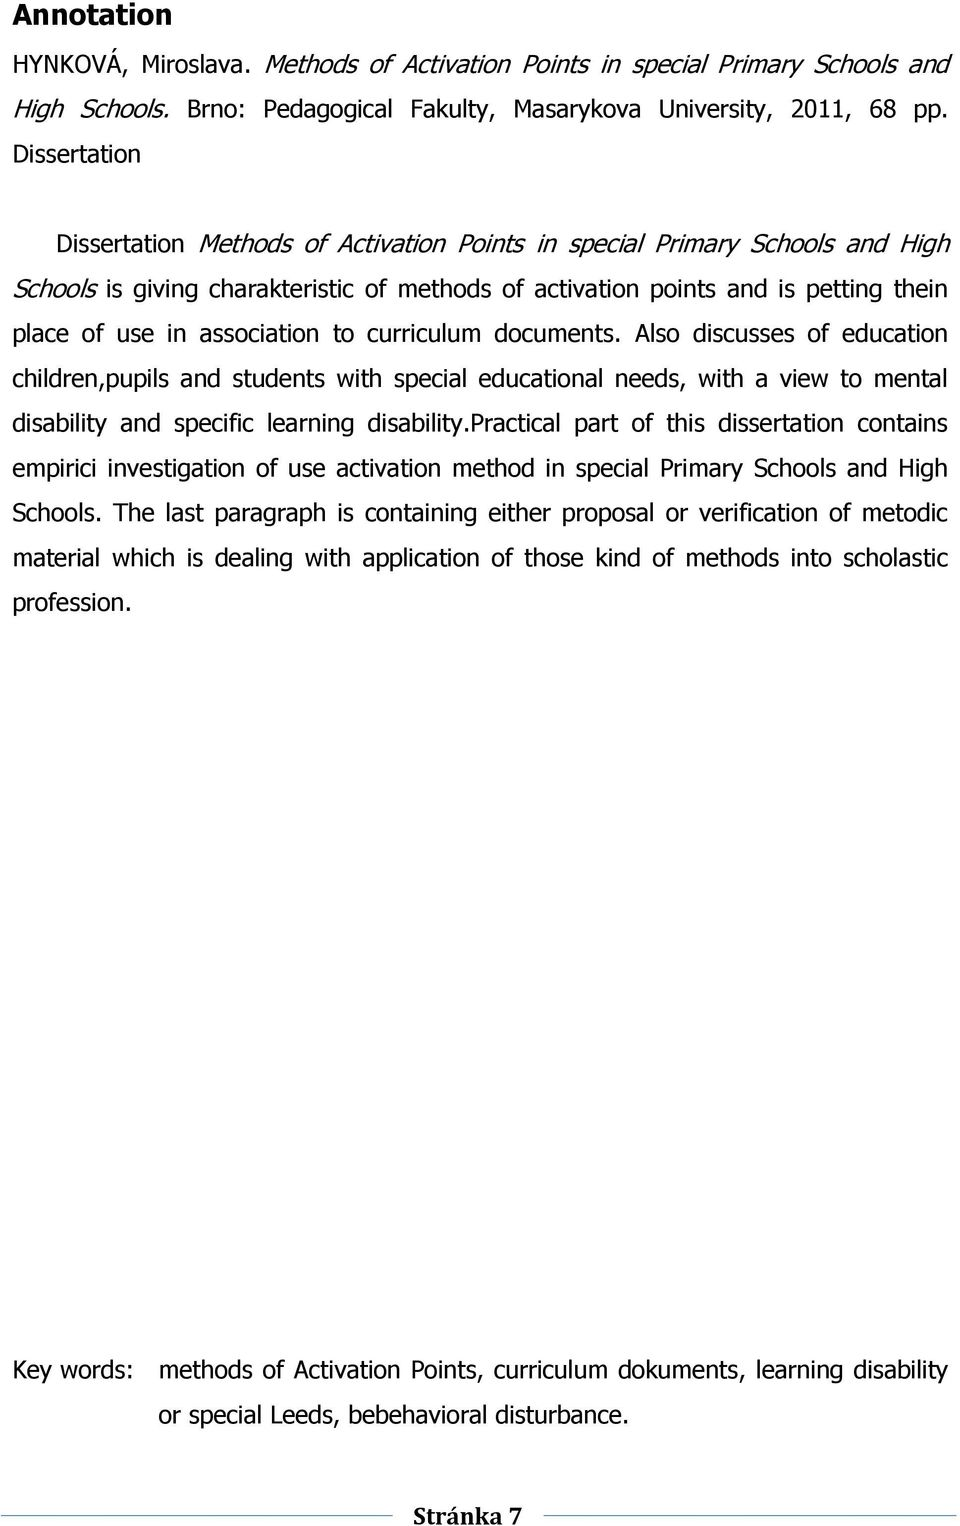 association to curriculum documents. Also discusses of education children,pupils and students with special educational needs, with a view to mental disability and specific learning disability.